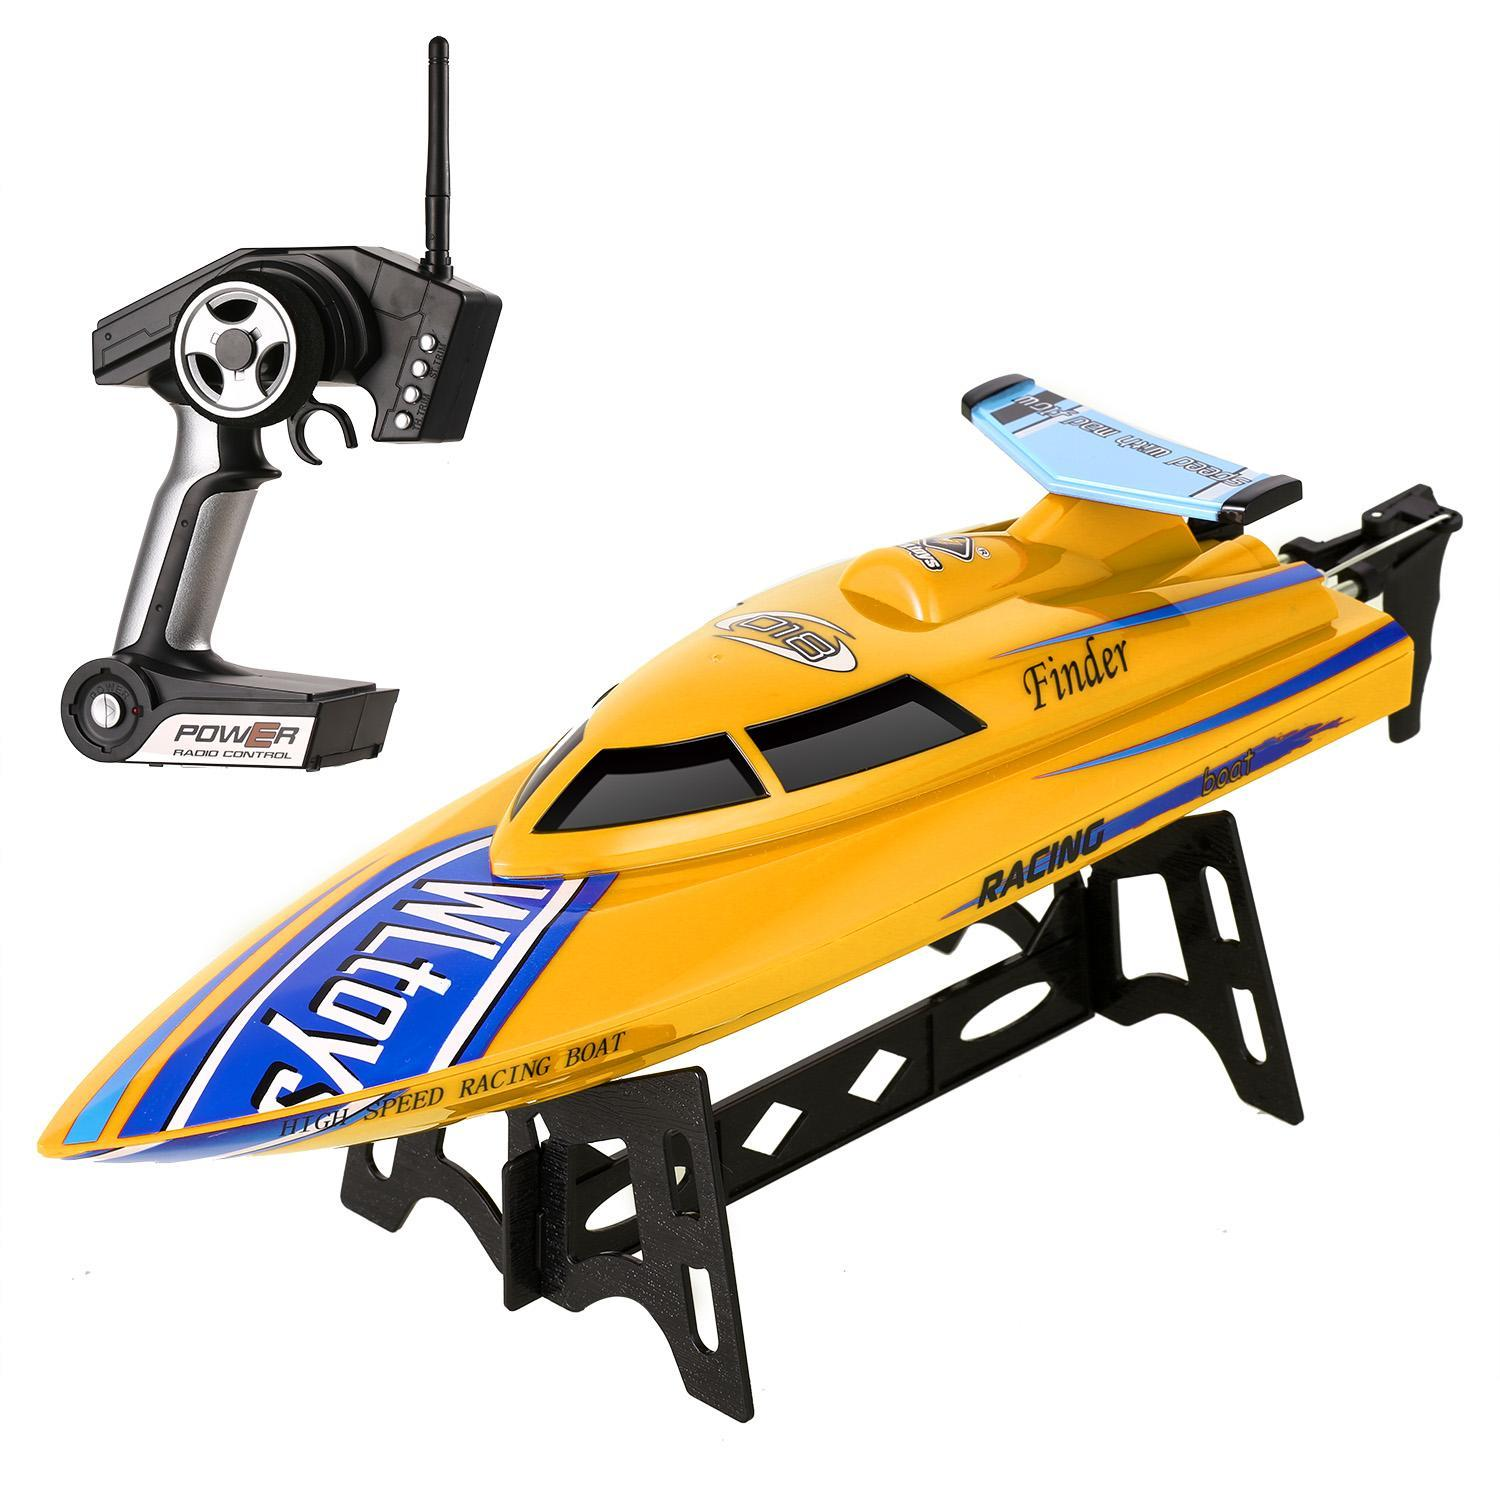 New High Speed Racing Boat Toy 2.4GHz Radio Control Ship Watercraft by